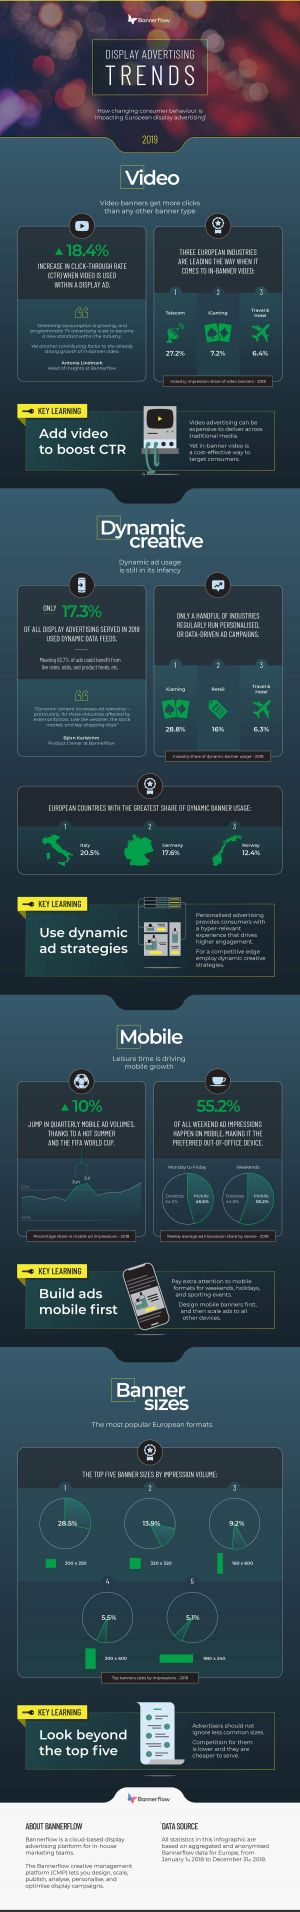 The Display Advertising Trends of 2019